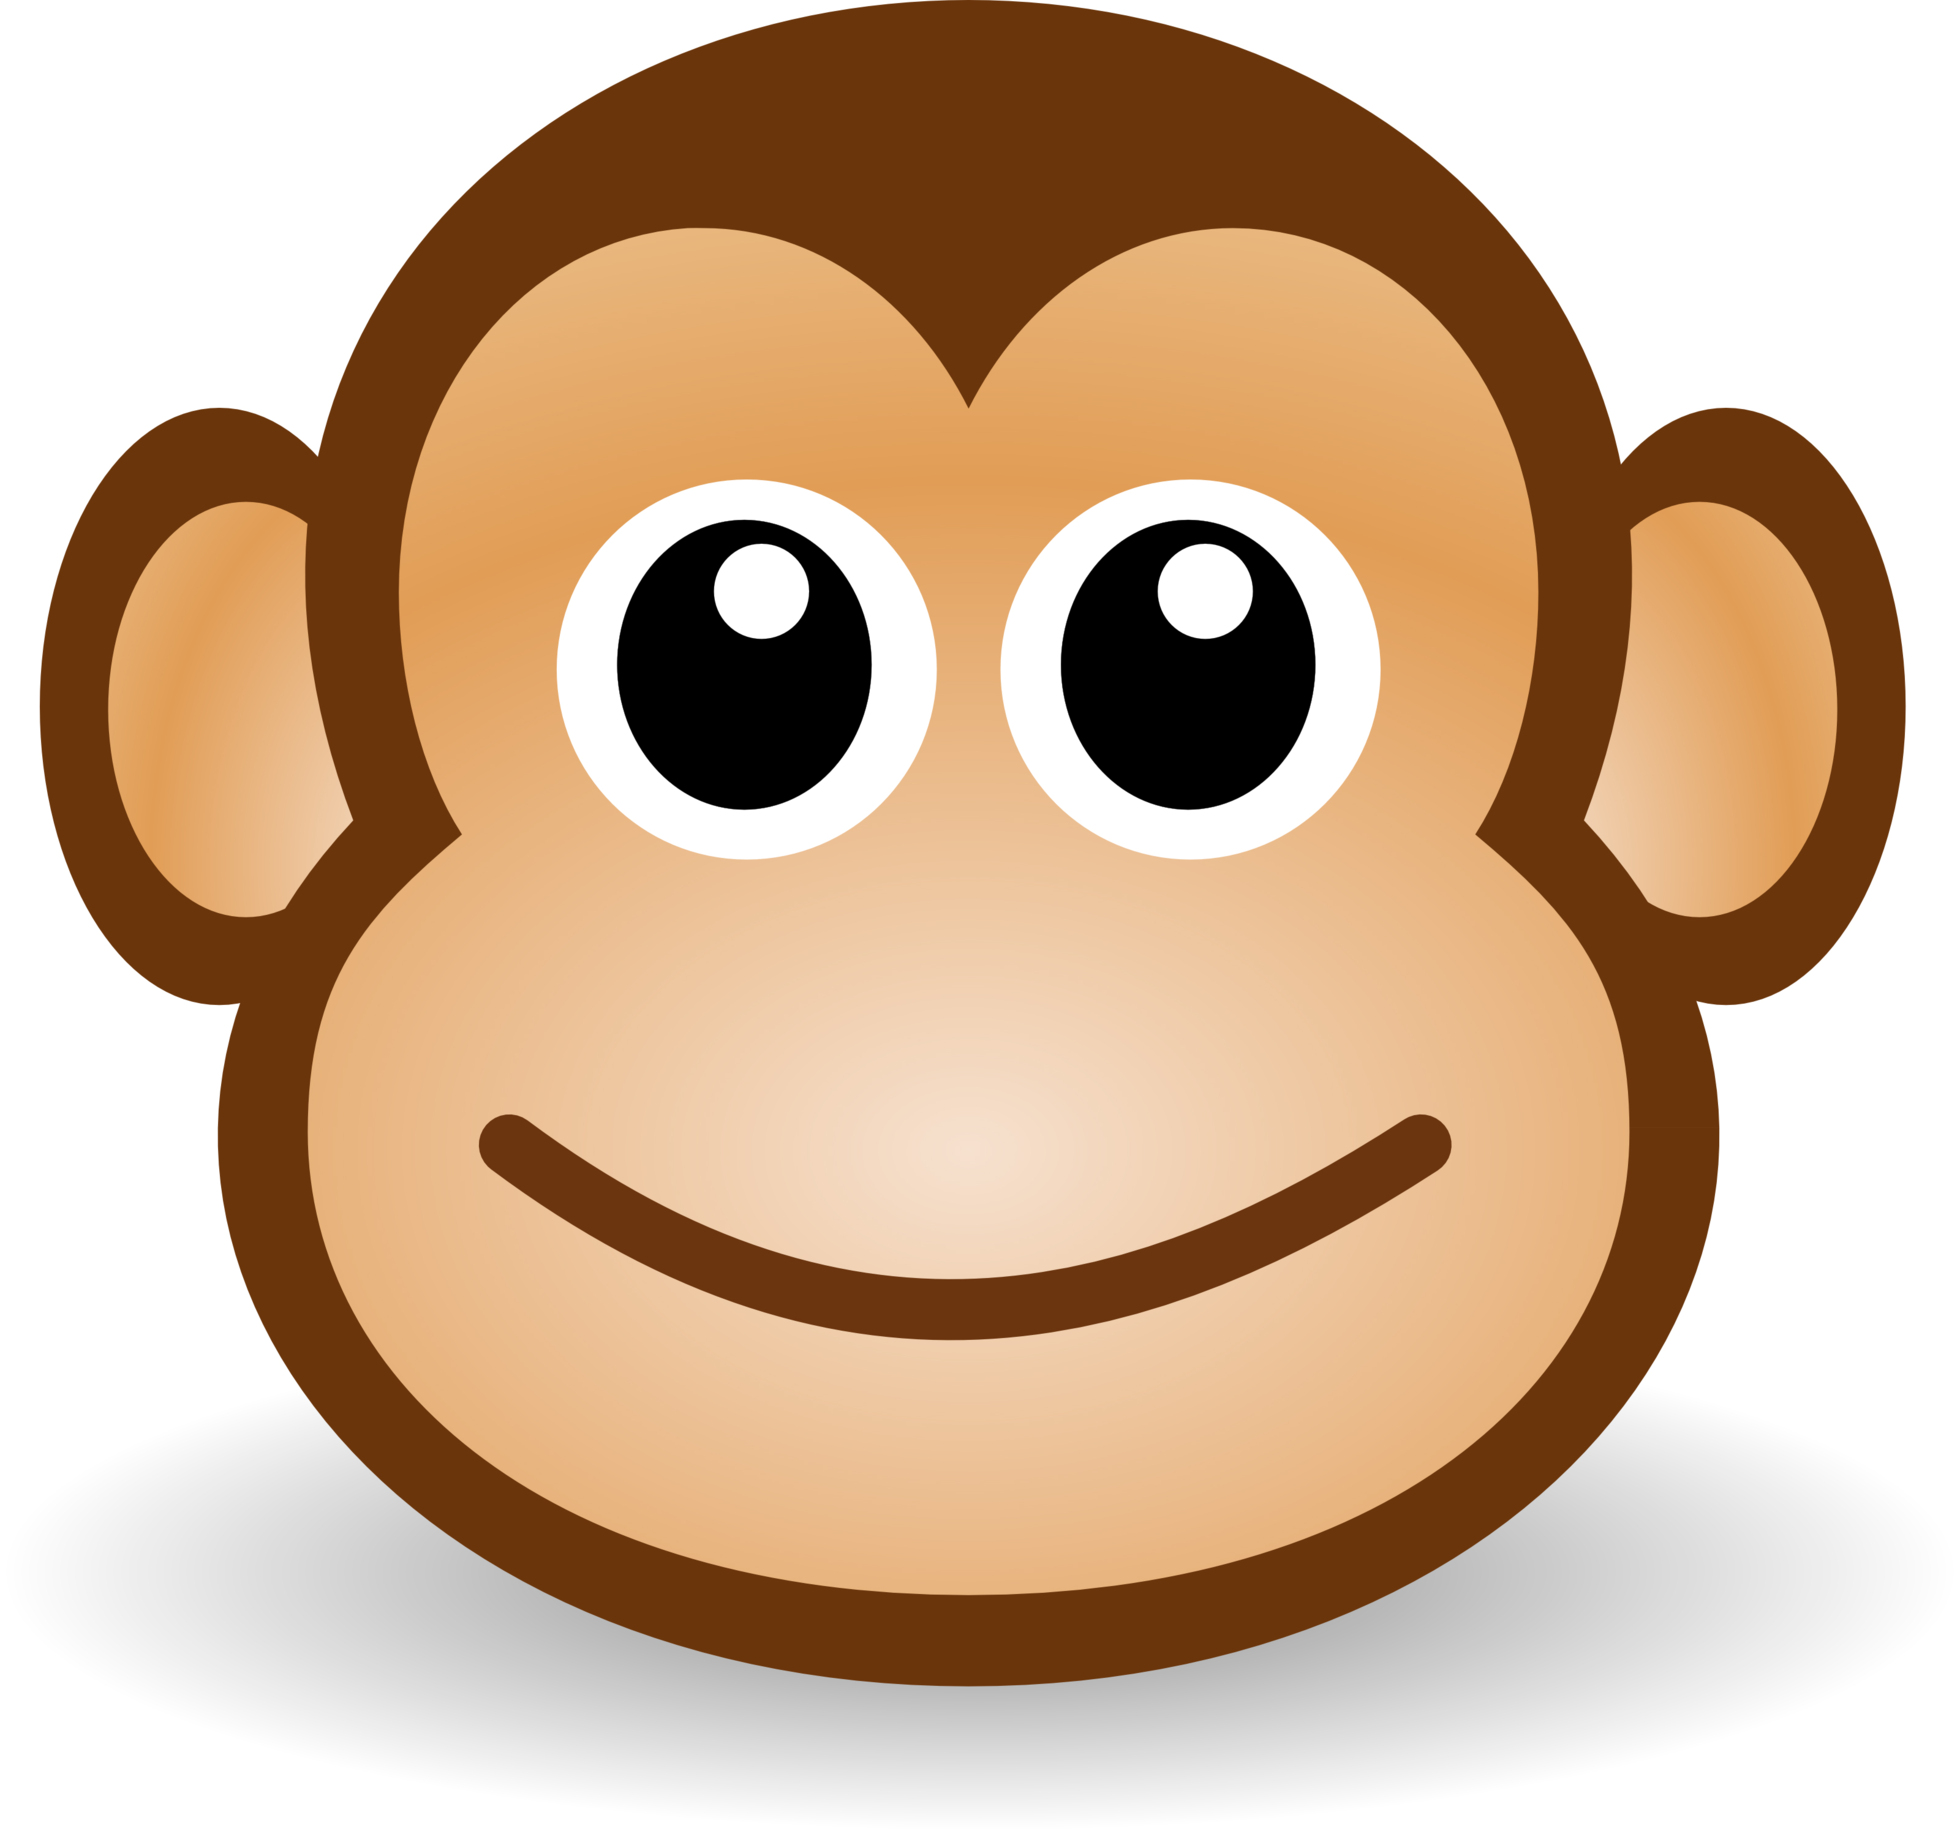 Monkey Cartoon | Clipart Panda - Free Clipart Images